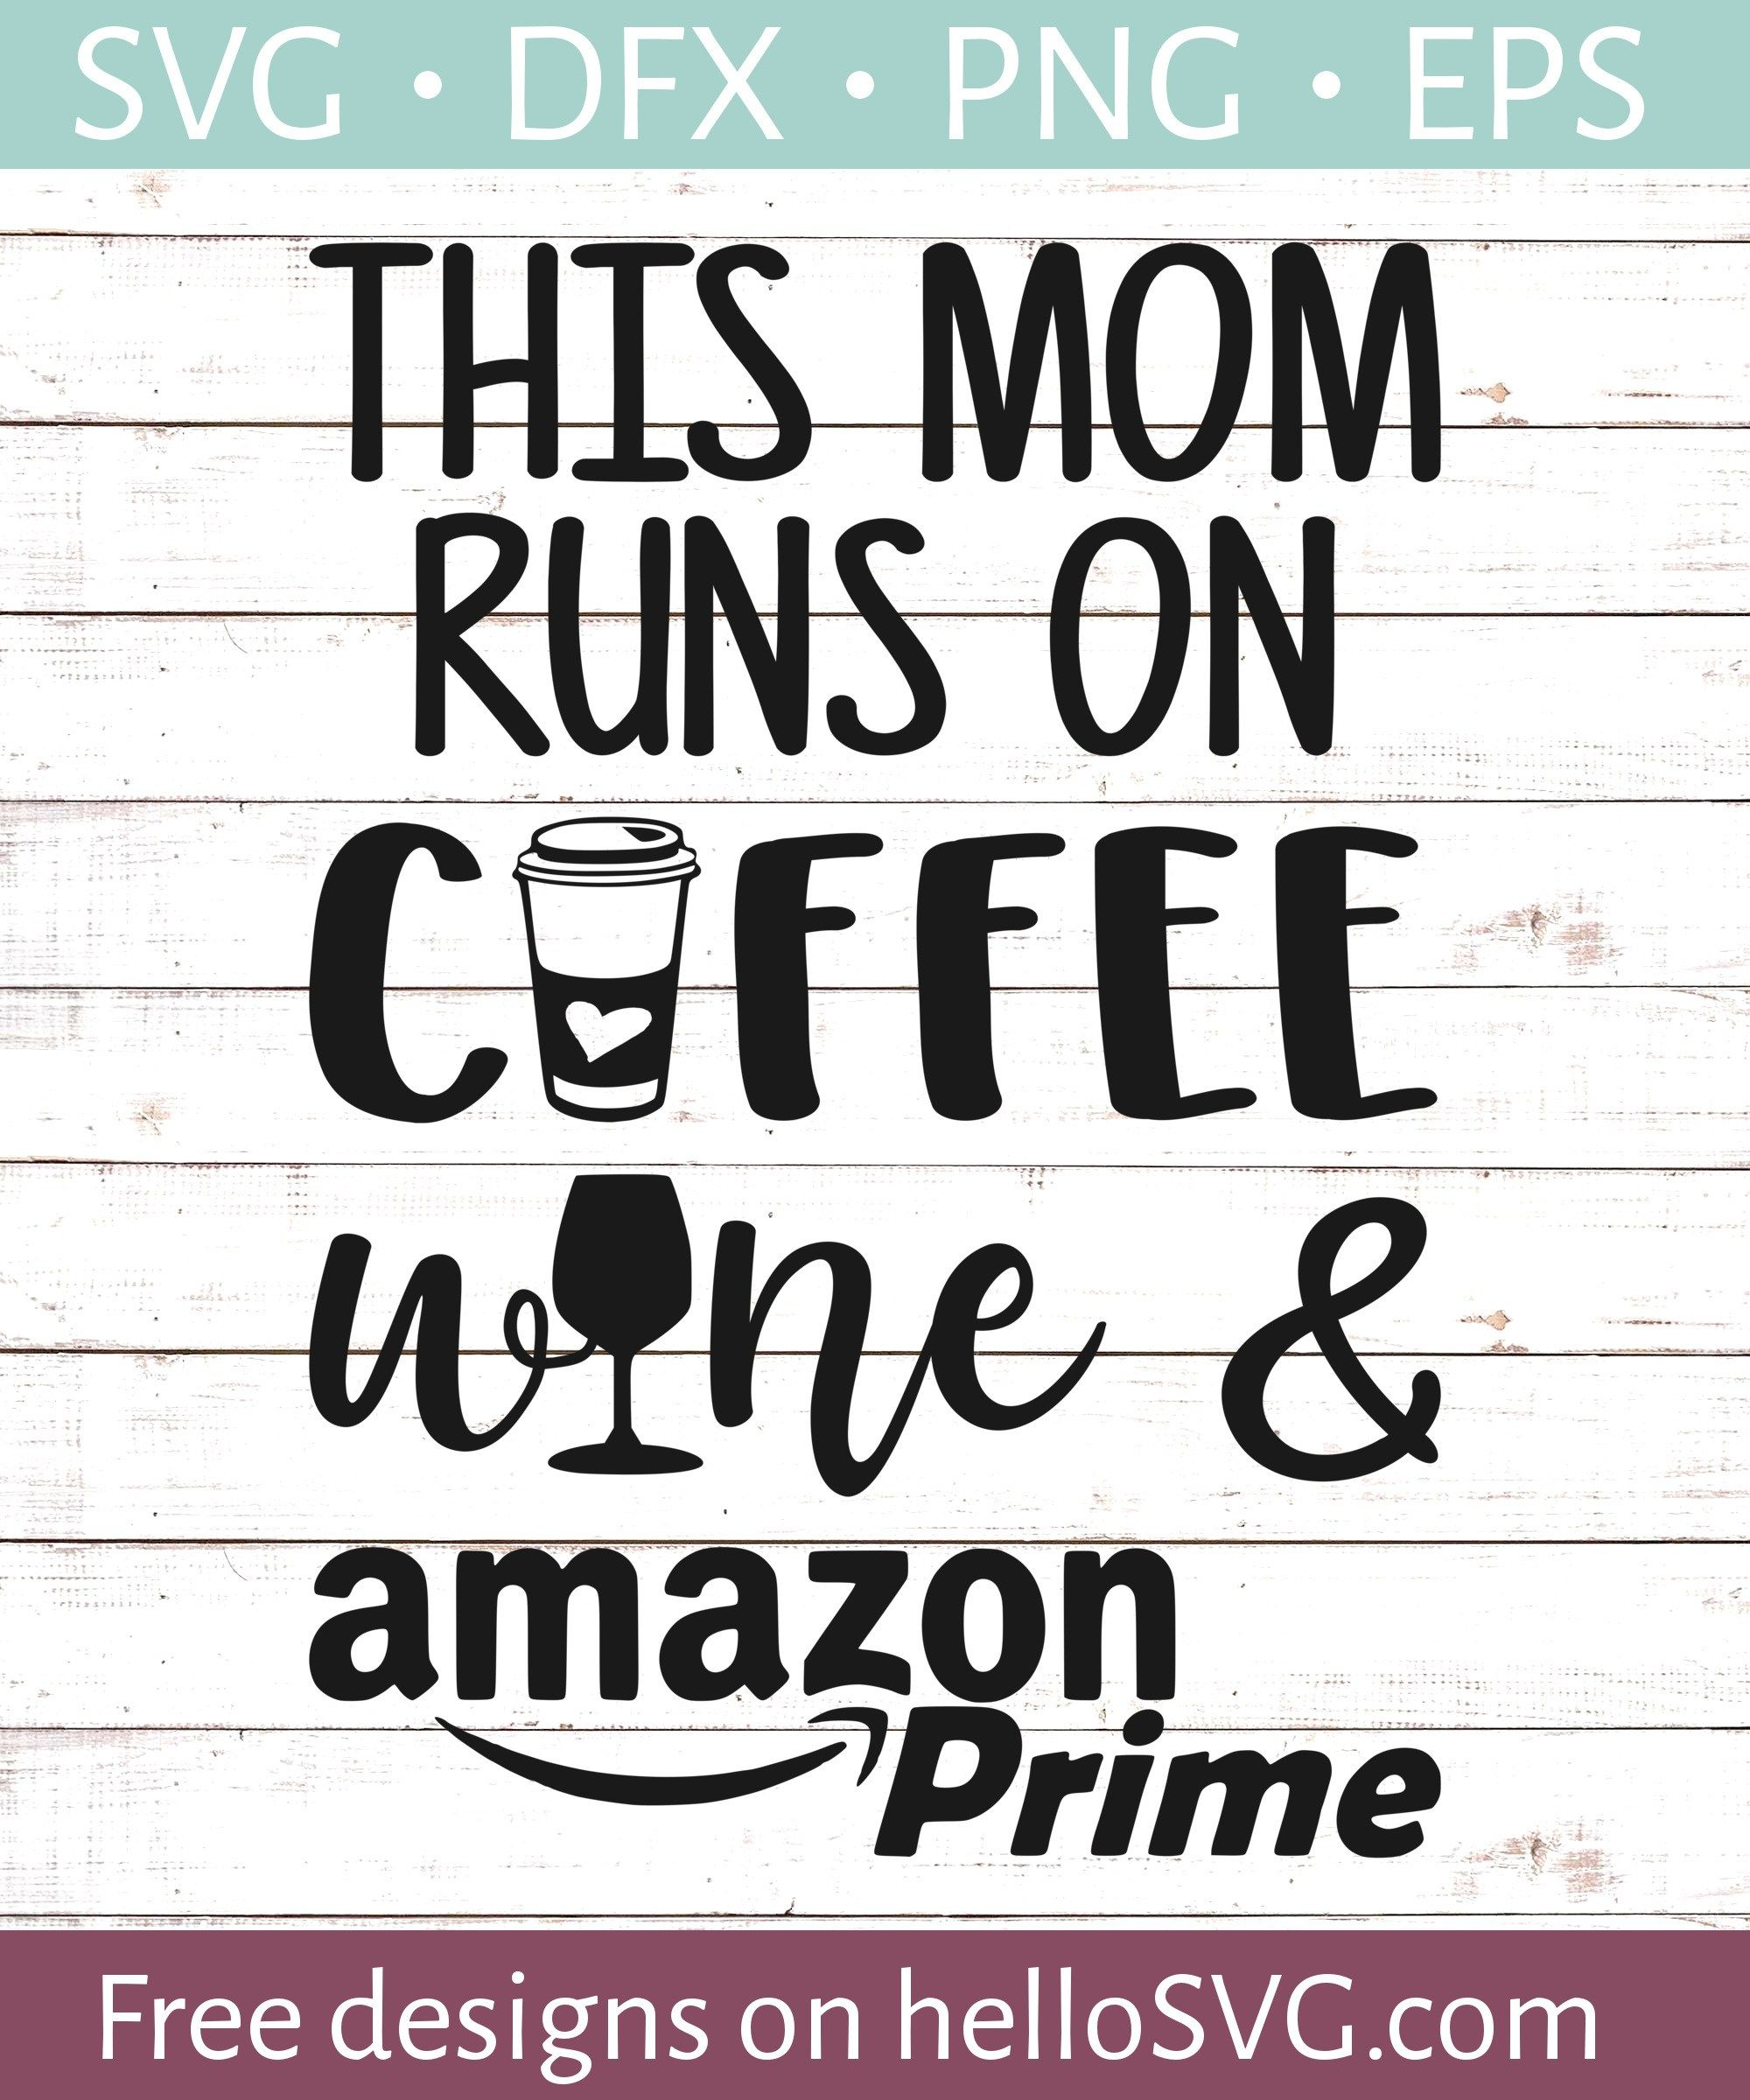 The Mom Runs On Coffee Wine and Amazon Prime SVG Free